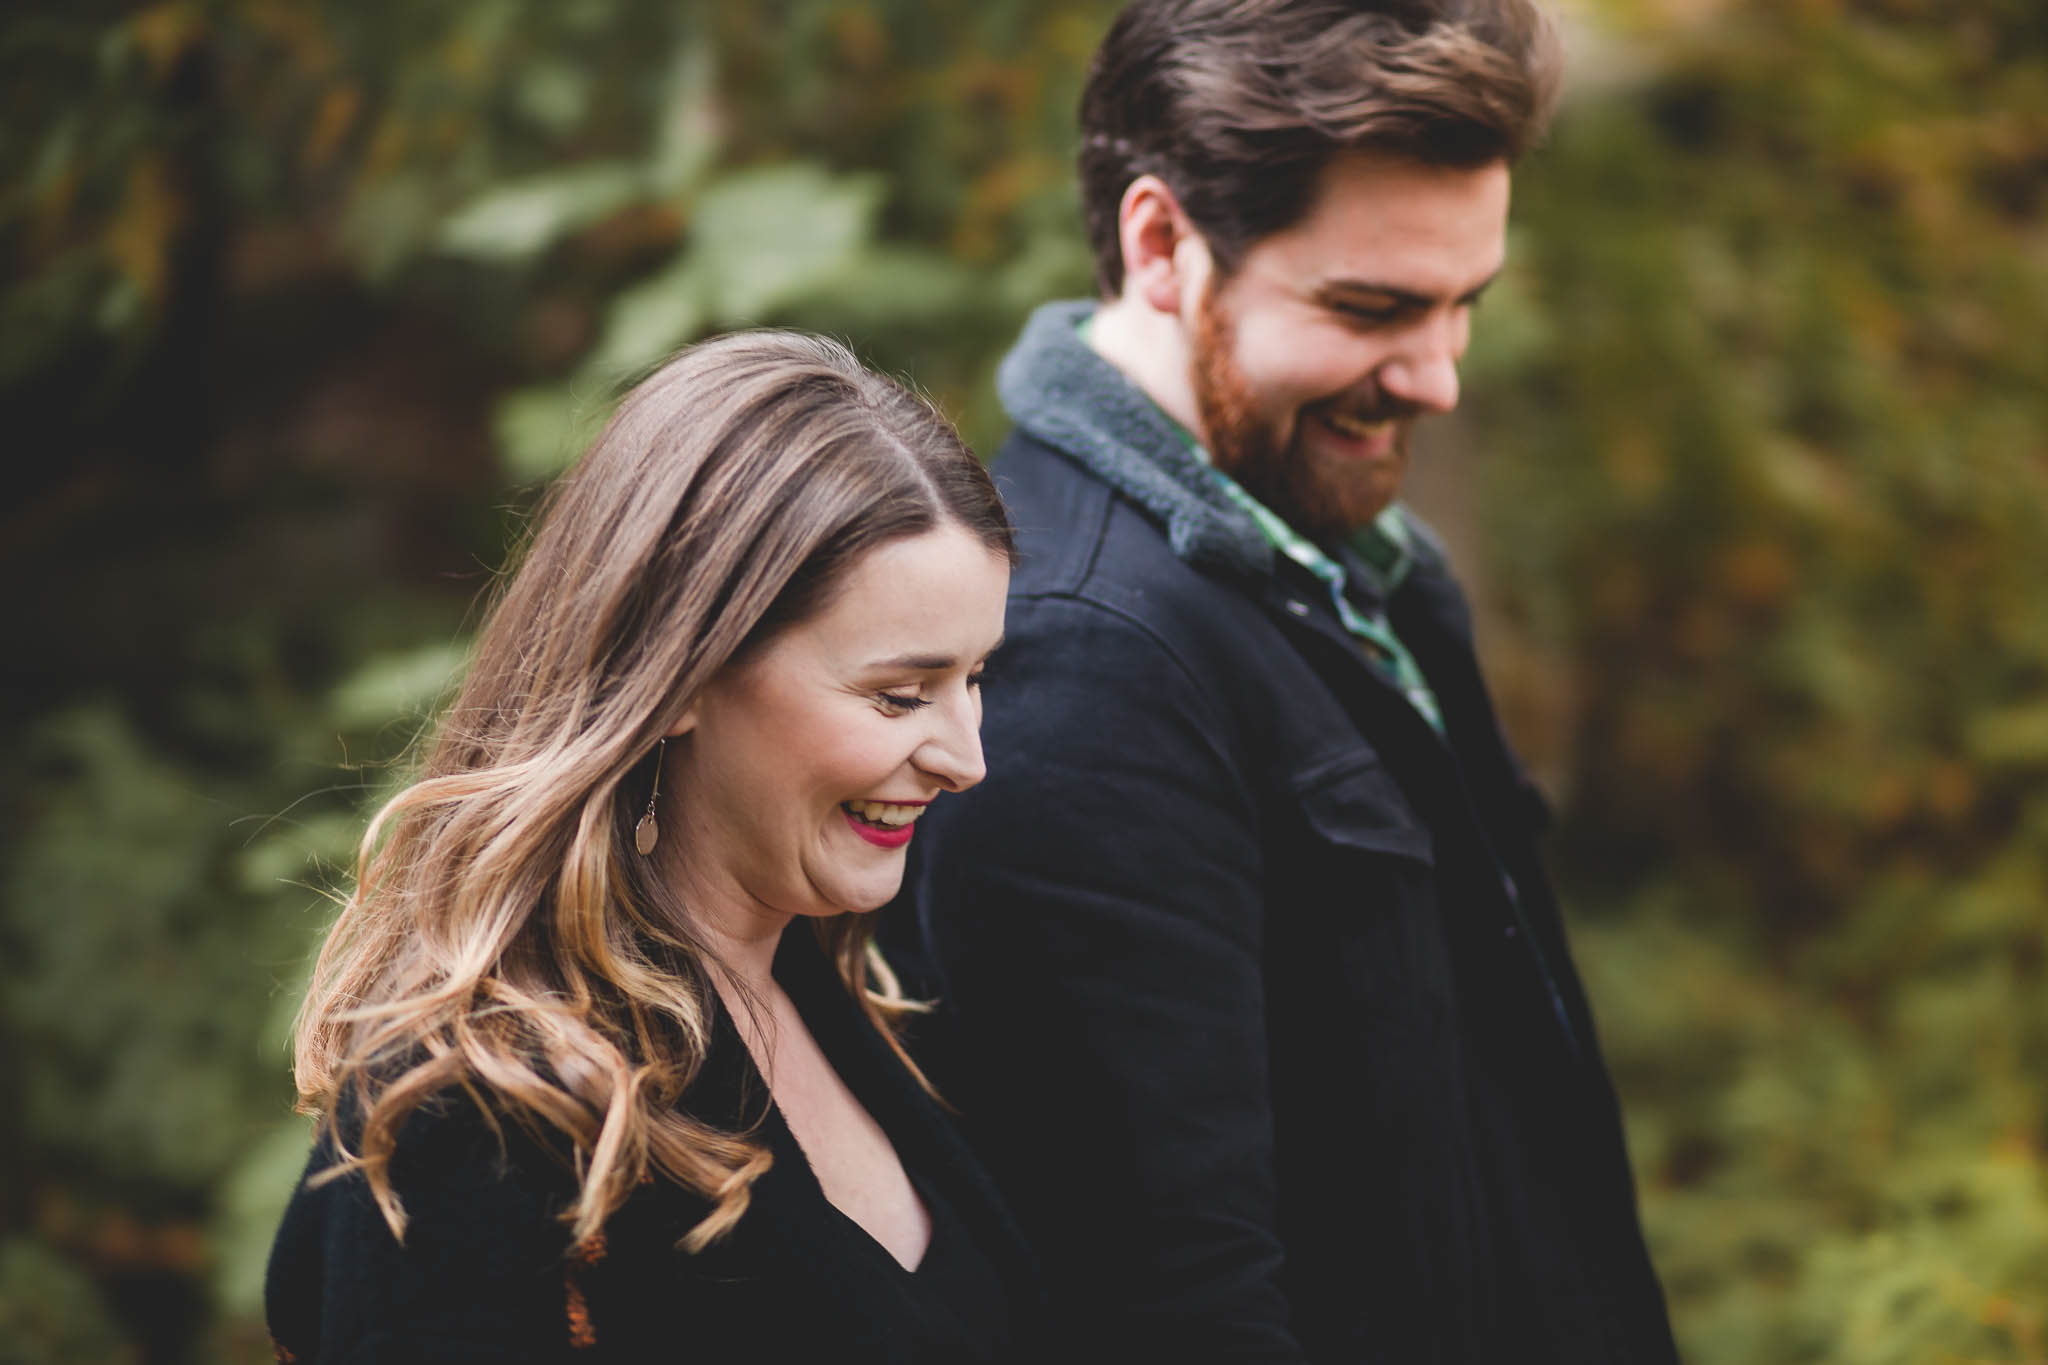 Amy D Photography- Fall Engagement Session- Fall Wedding- Engagement Session Poses- Engagement Poses- Wedding Photography Barrie-Fall Engagement  (34 of 90).jpg